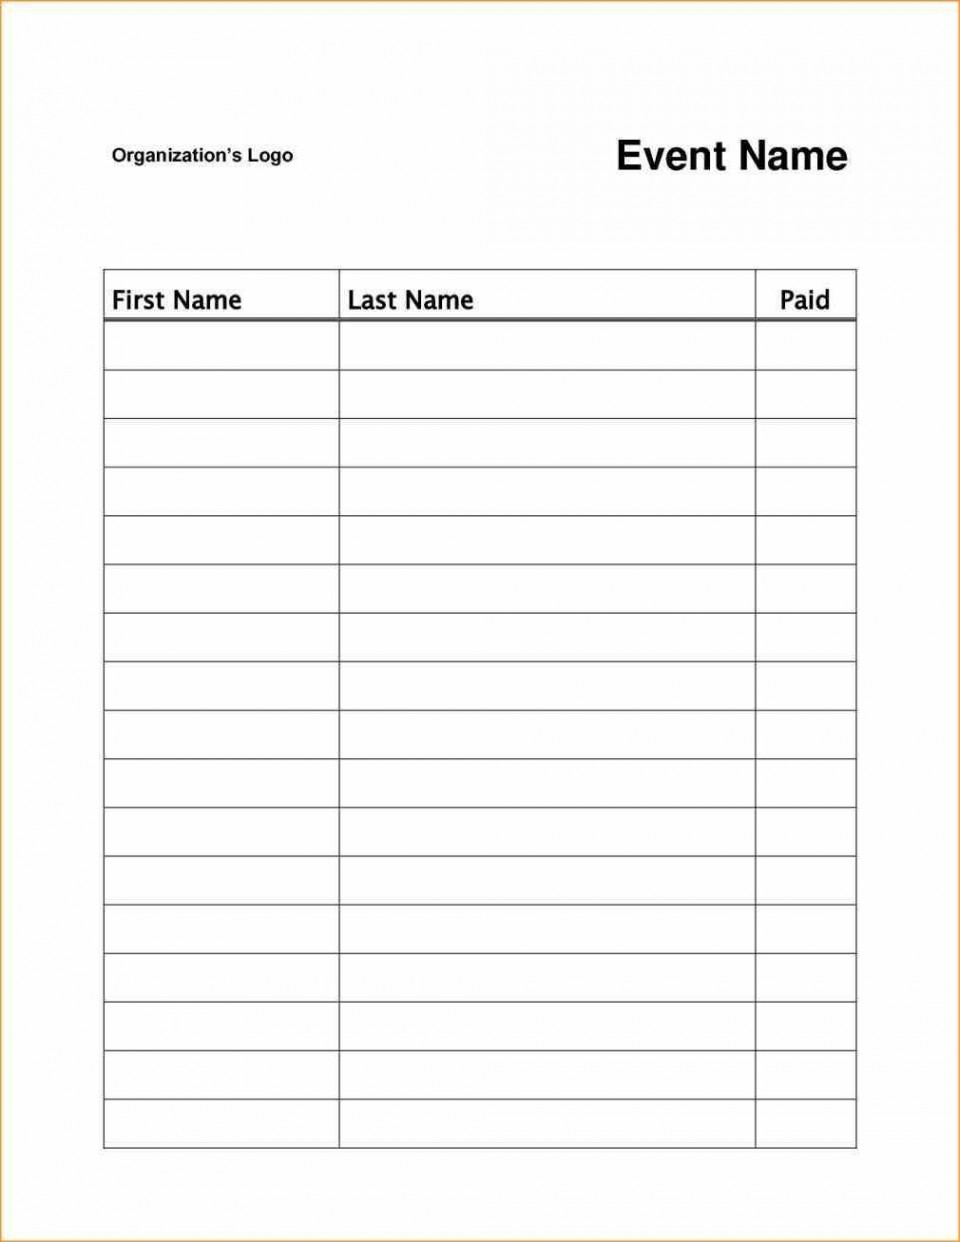 003 Magnificent Sign Up Sheet Template High Resolution  Volunteer In Word Work960